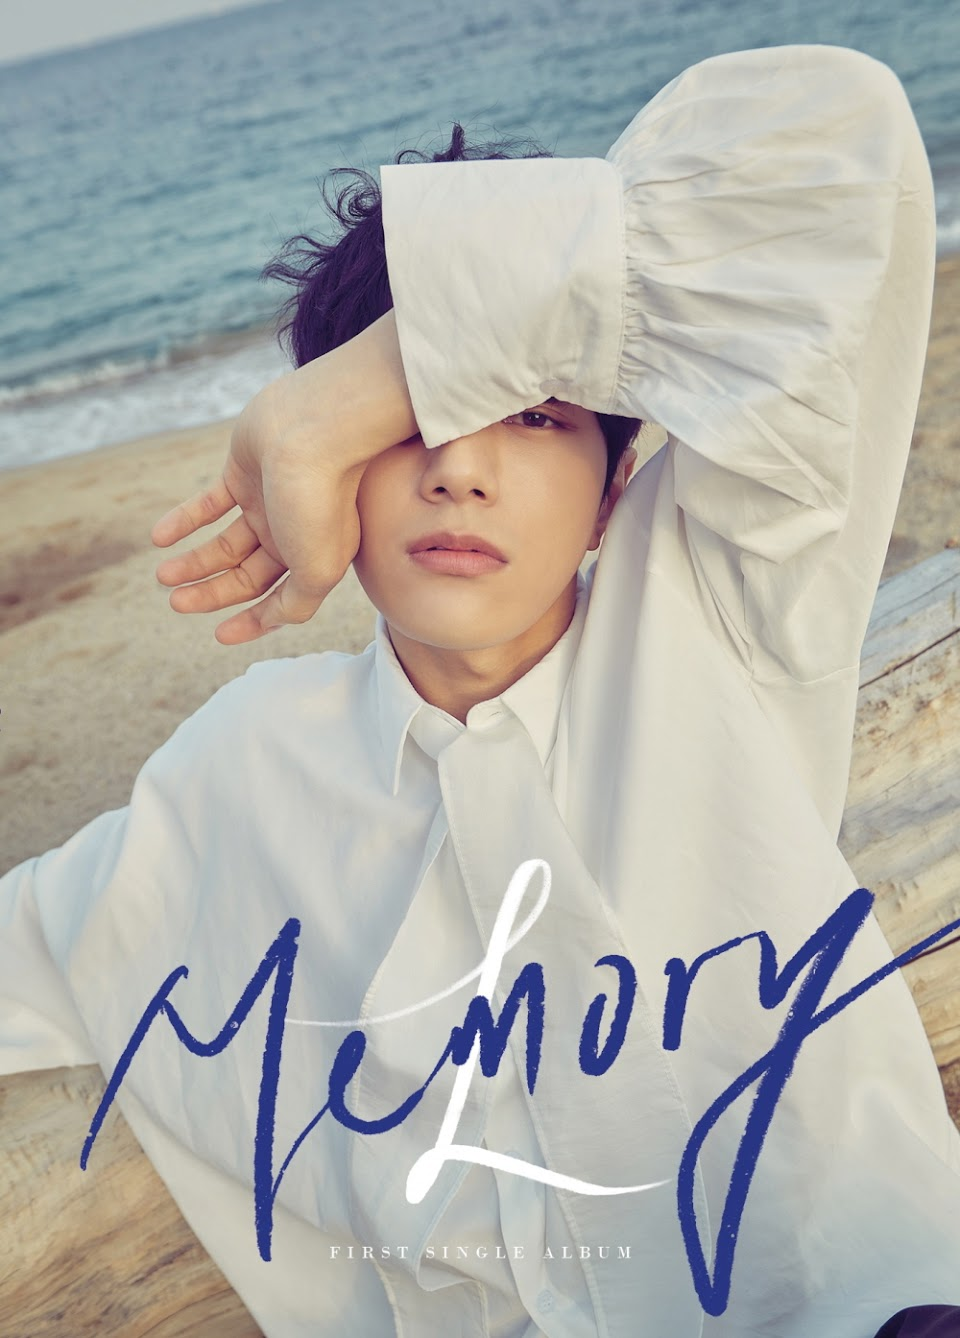 Kim_Myung_Soo_Memory_physical_album_cover